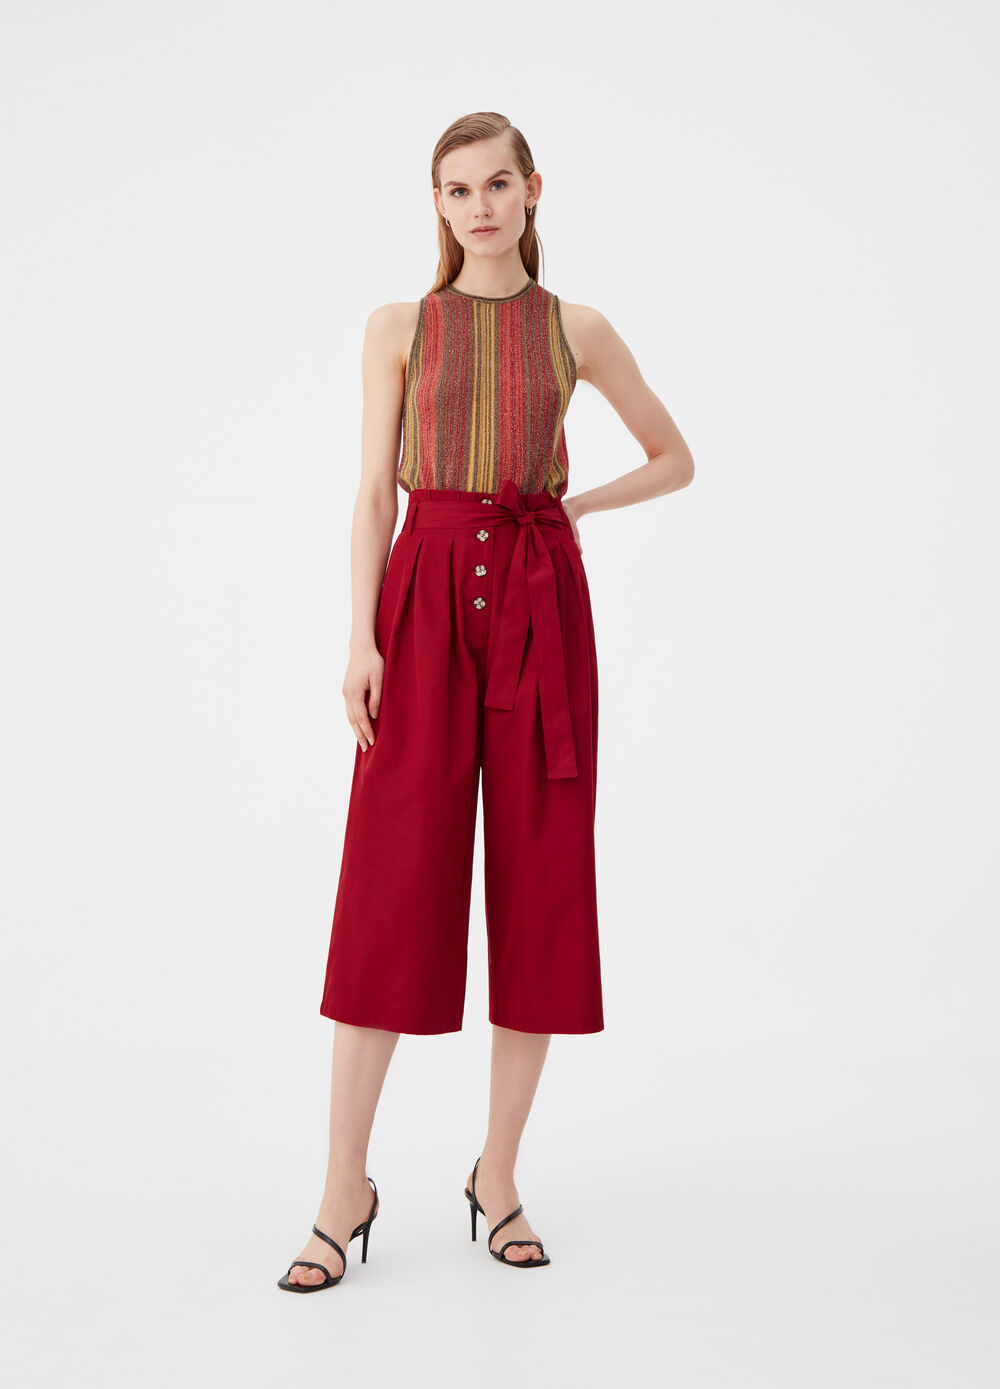 Culotte trousers with knotted belt